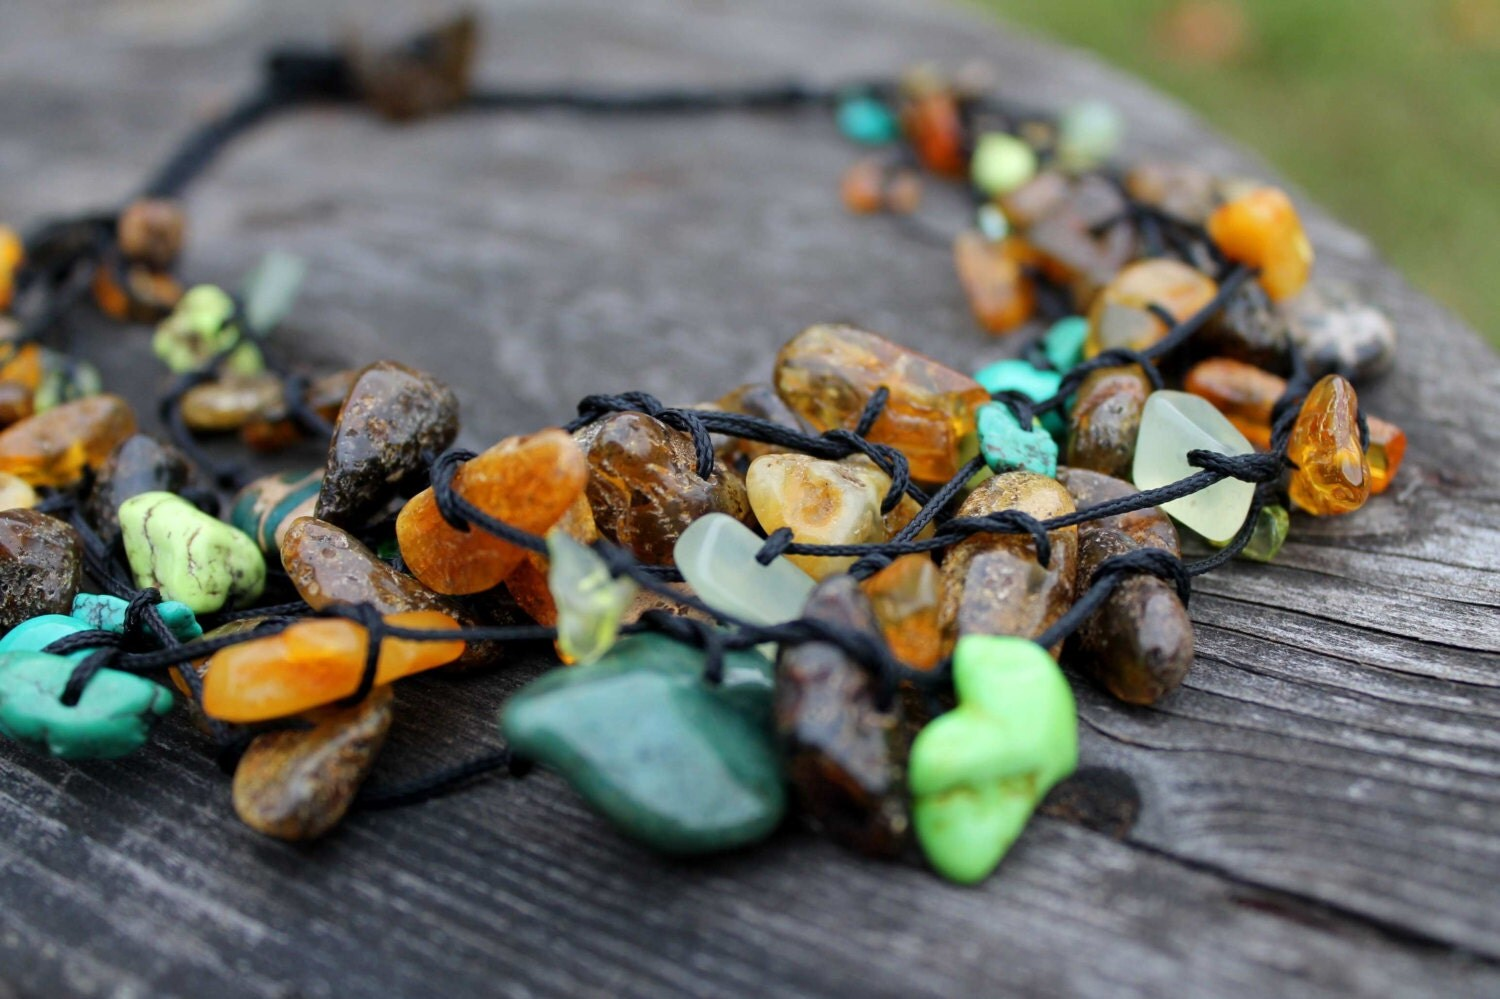 Raw Stone Necklace Multistrand Birthstone Jewelry Green Teal Honey Black Natural Rough Baltic Amber Turquoise Apatite Amazonite Fall Fashion - DreamsFactory